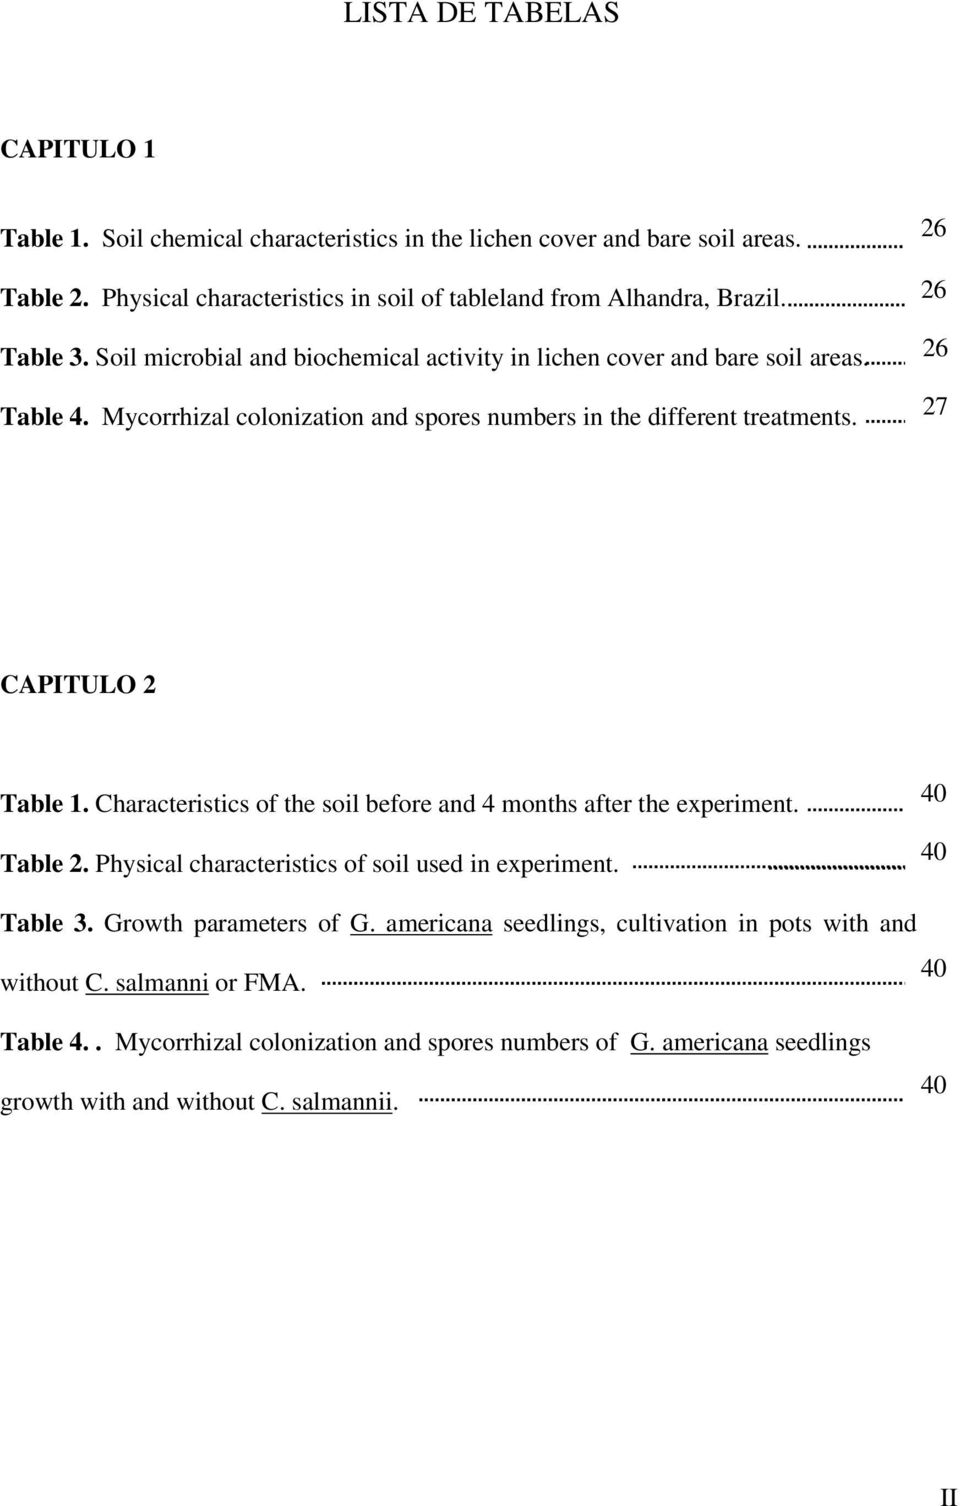 26 26 26 27 CAPITULO 2 Table 1. Characteristics of the soil before and 4 months after the experiment. Table 2. Physical characteristics of soil used in experiment. 40 40 Table 3.